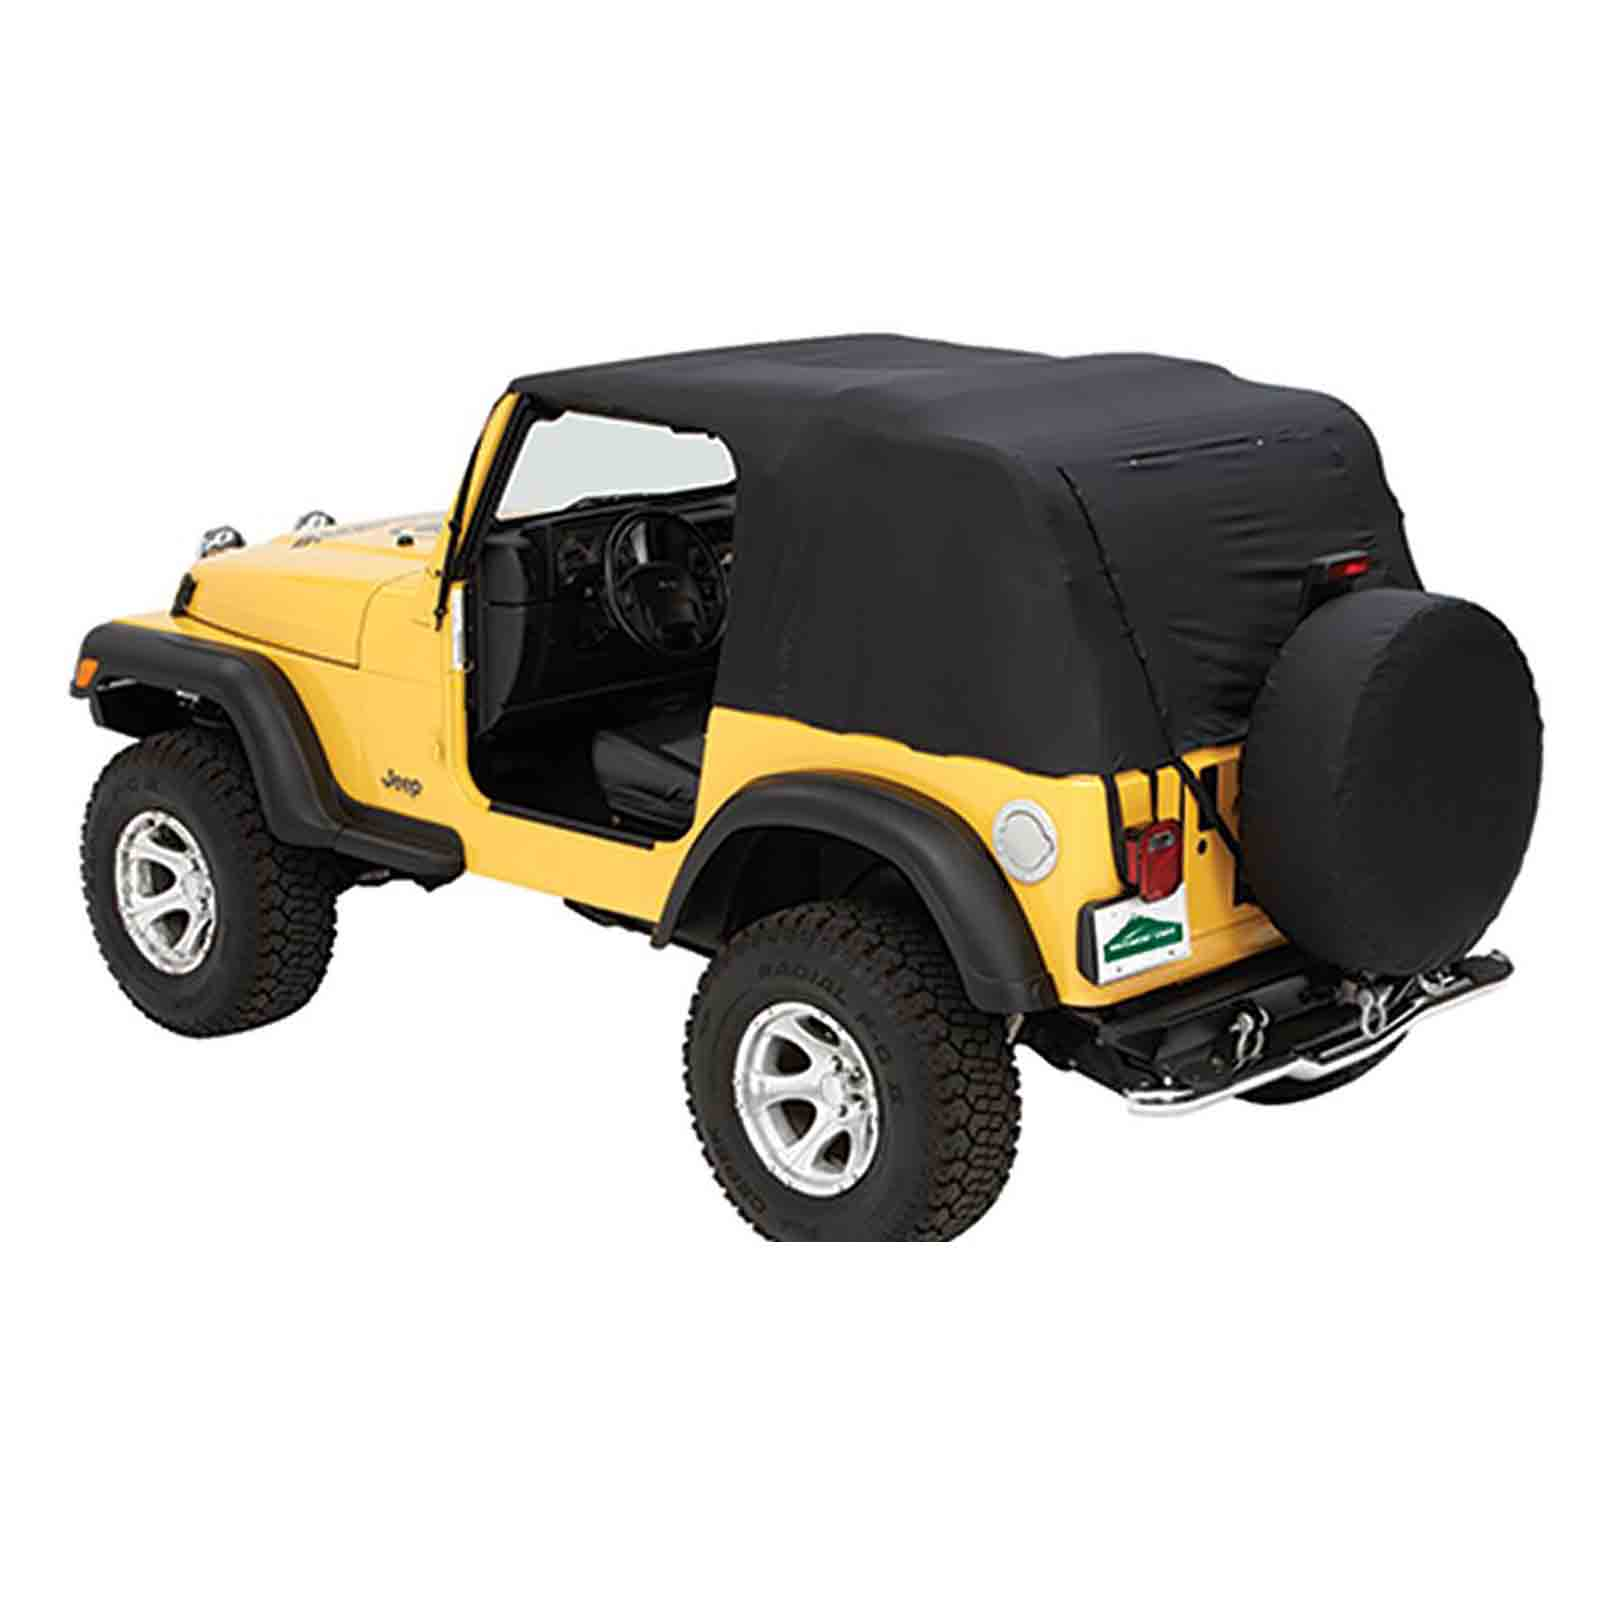 Capottina soft top di emergenza wrangler yj 92 95  ricambi jeep